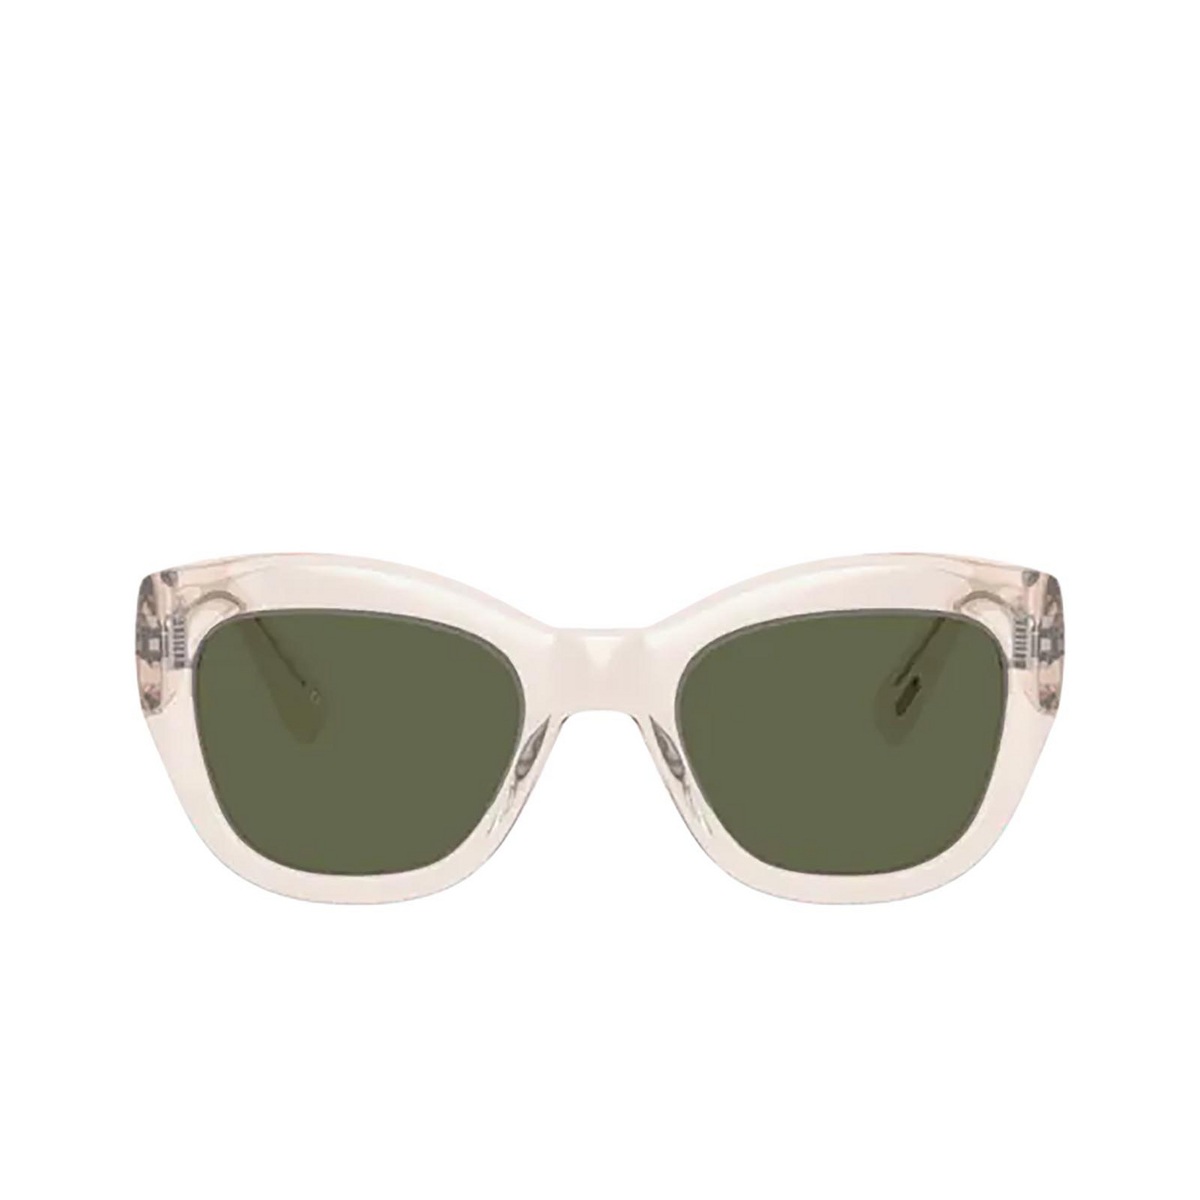 Oliver Peoples® Butterfly Sunglasses: Lalit OV5430SU color Buff 109471 - front view.